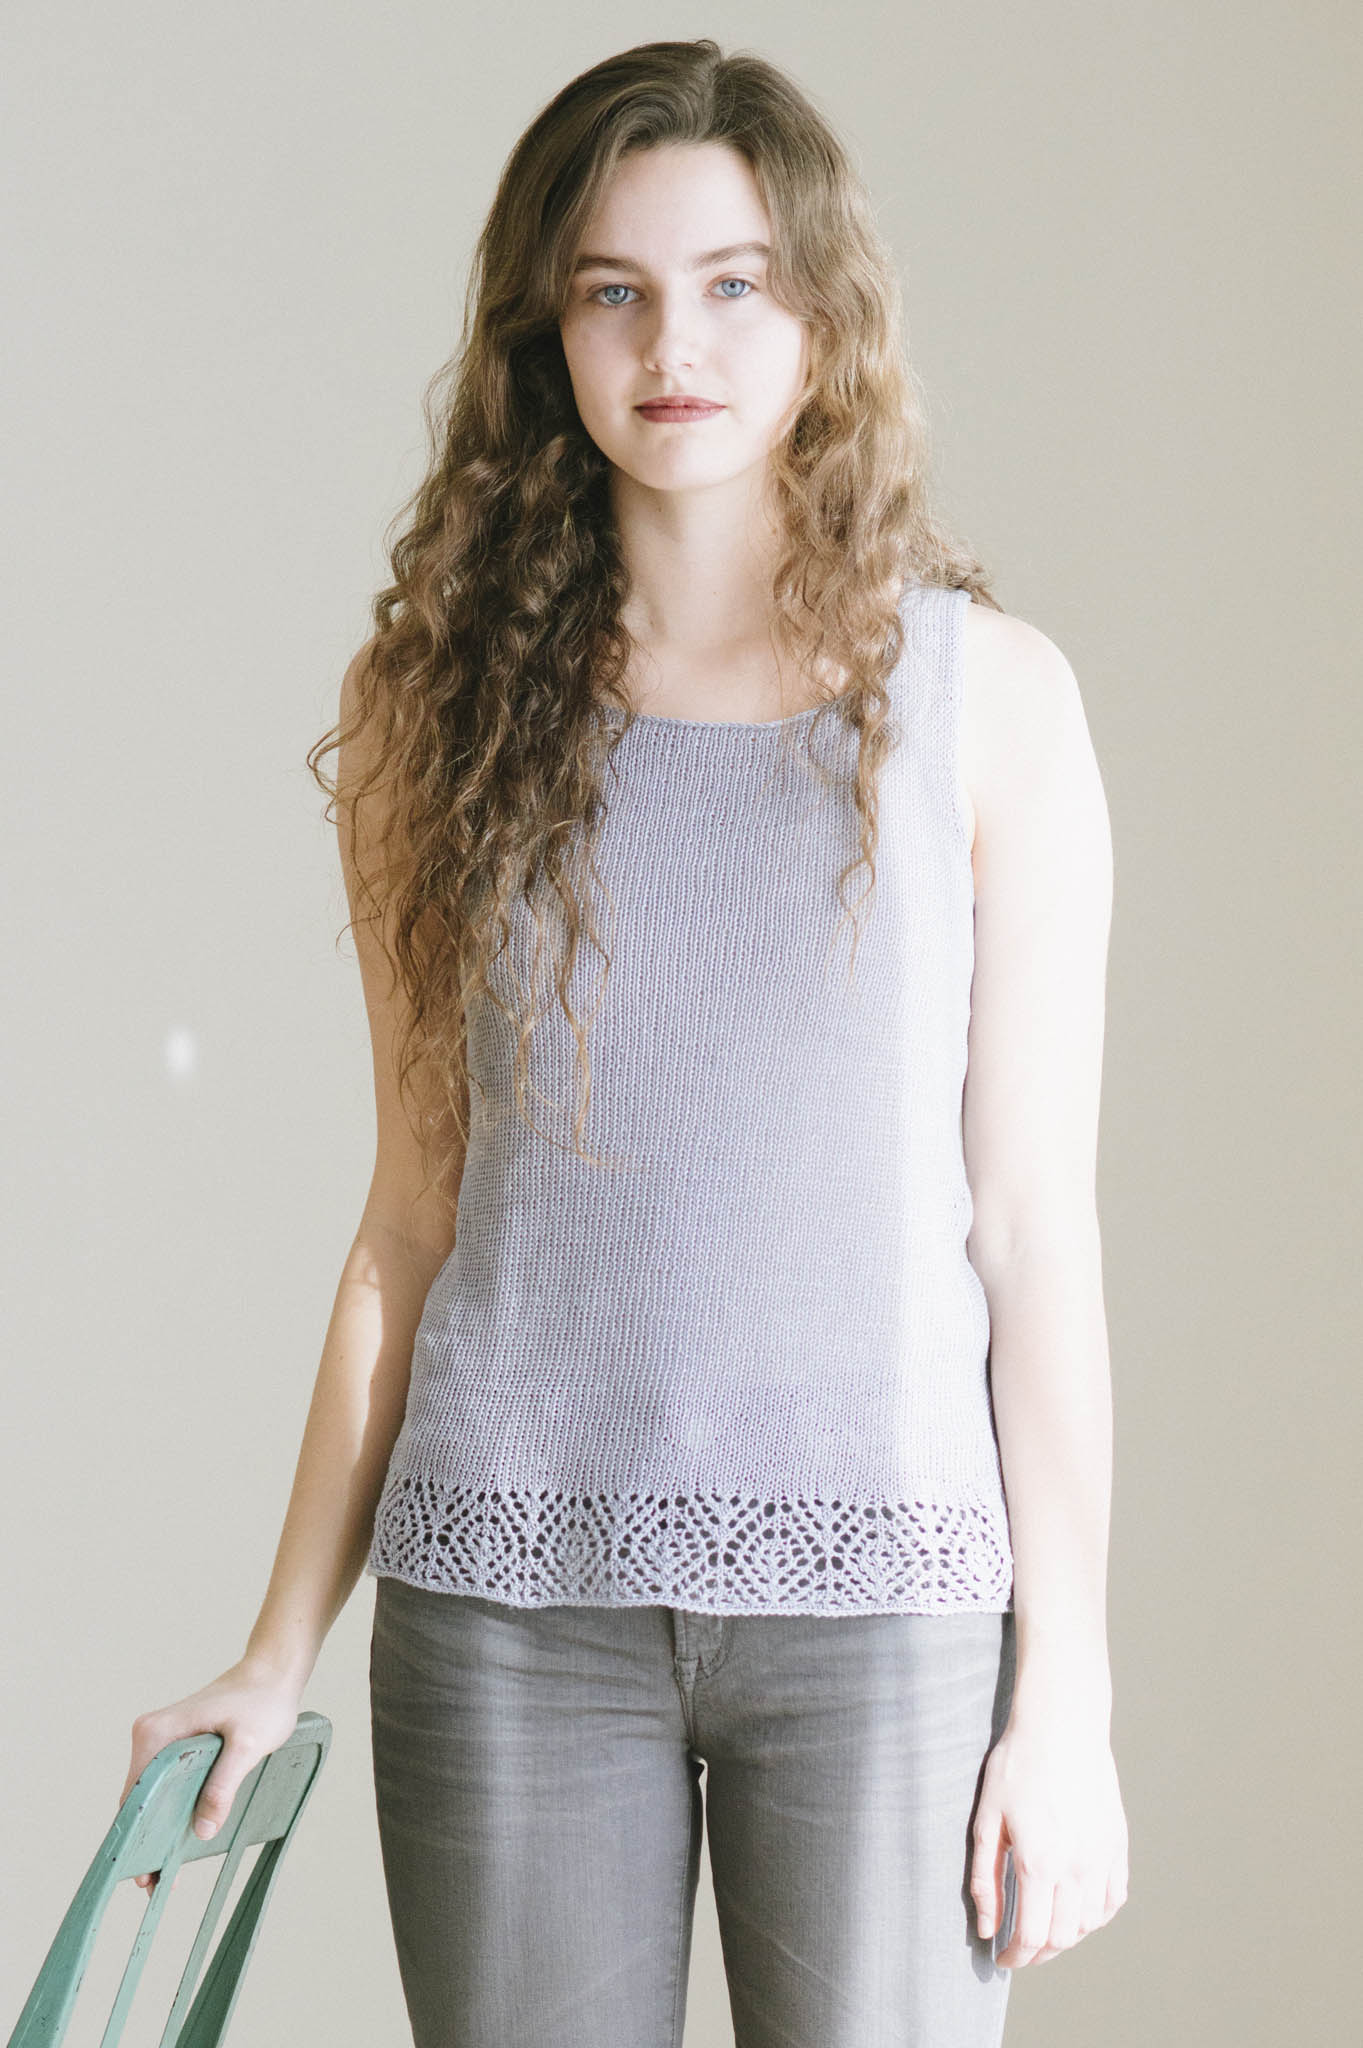 quince-co-aila-isabell-kraemer-knitting-pattern-sparrow-4.jpg